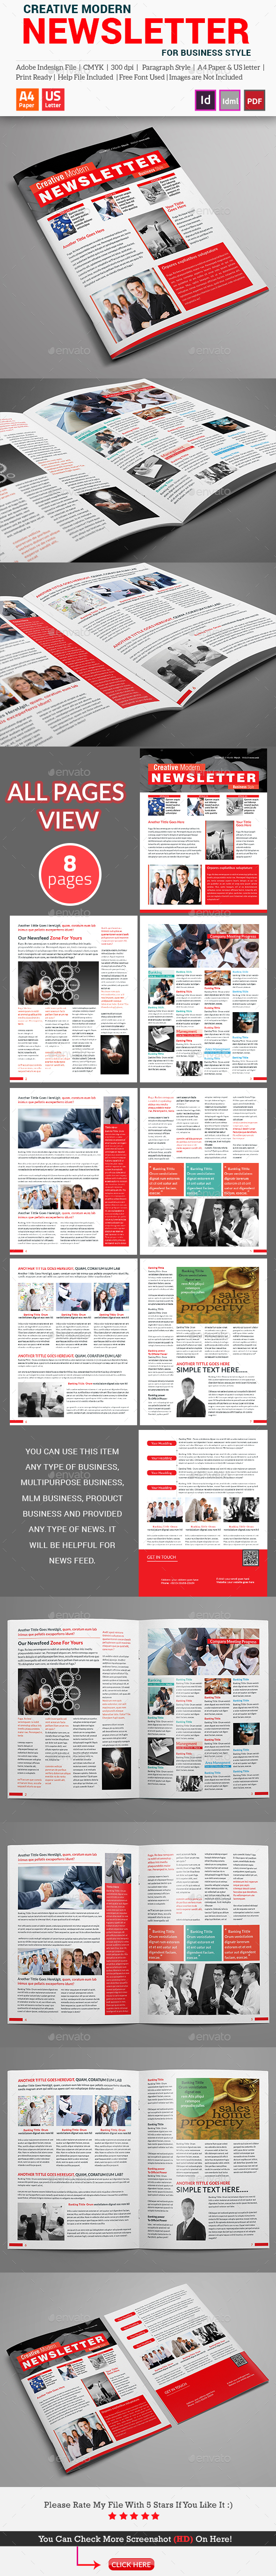 Creative Modern Newsletter (For Business Style) - Newsletters Print Templates